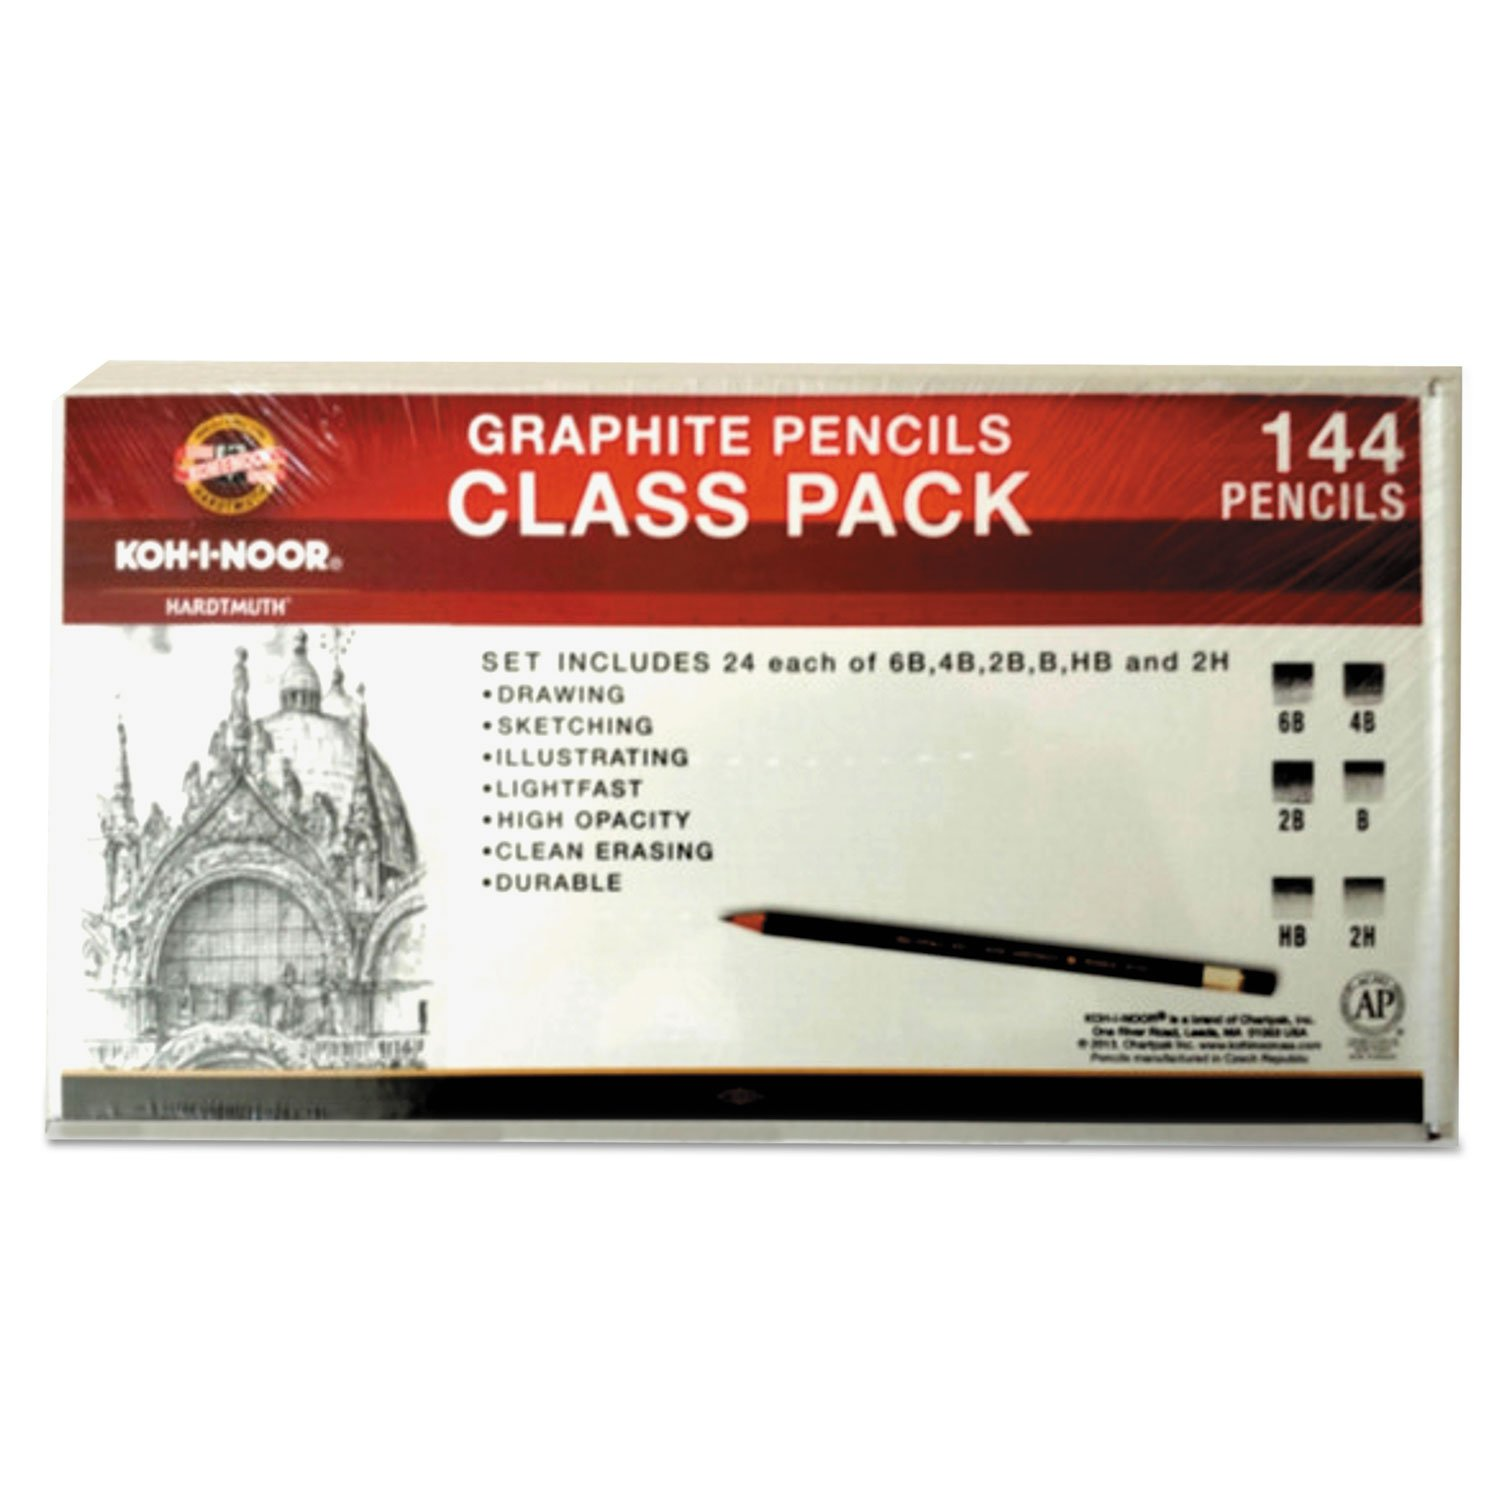 Toison D'or Graphite Pencils, 3.8 Mm, Class Pack, 6 Shades, 6b-2h, 24/set by KOH-I-NOOR